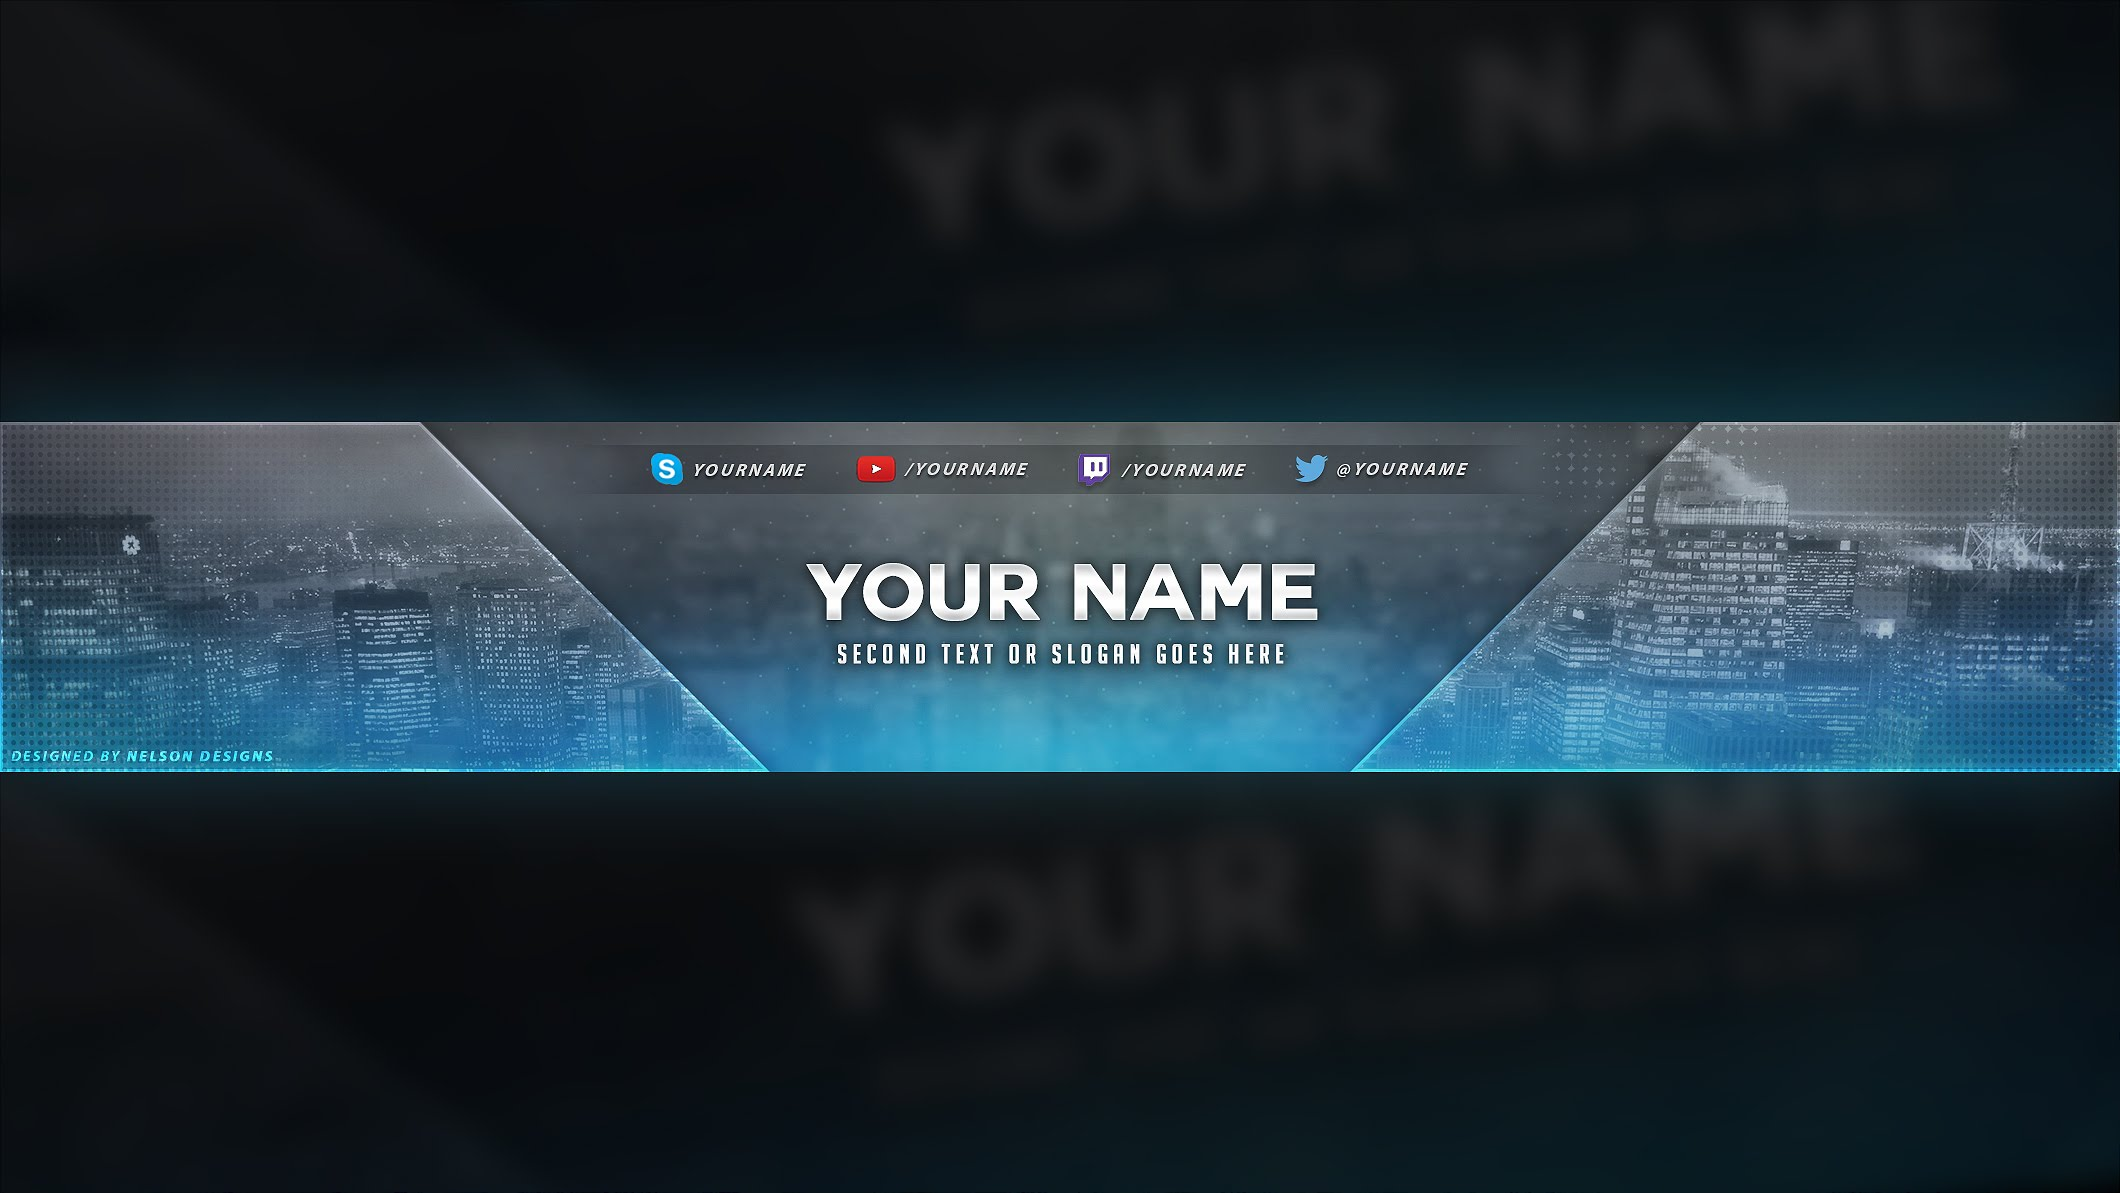 Free Yt Banners - FREE DOWNLOAD